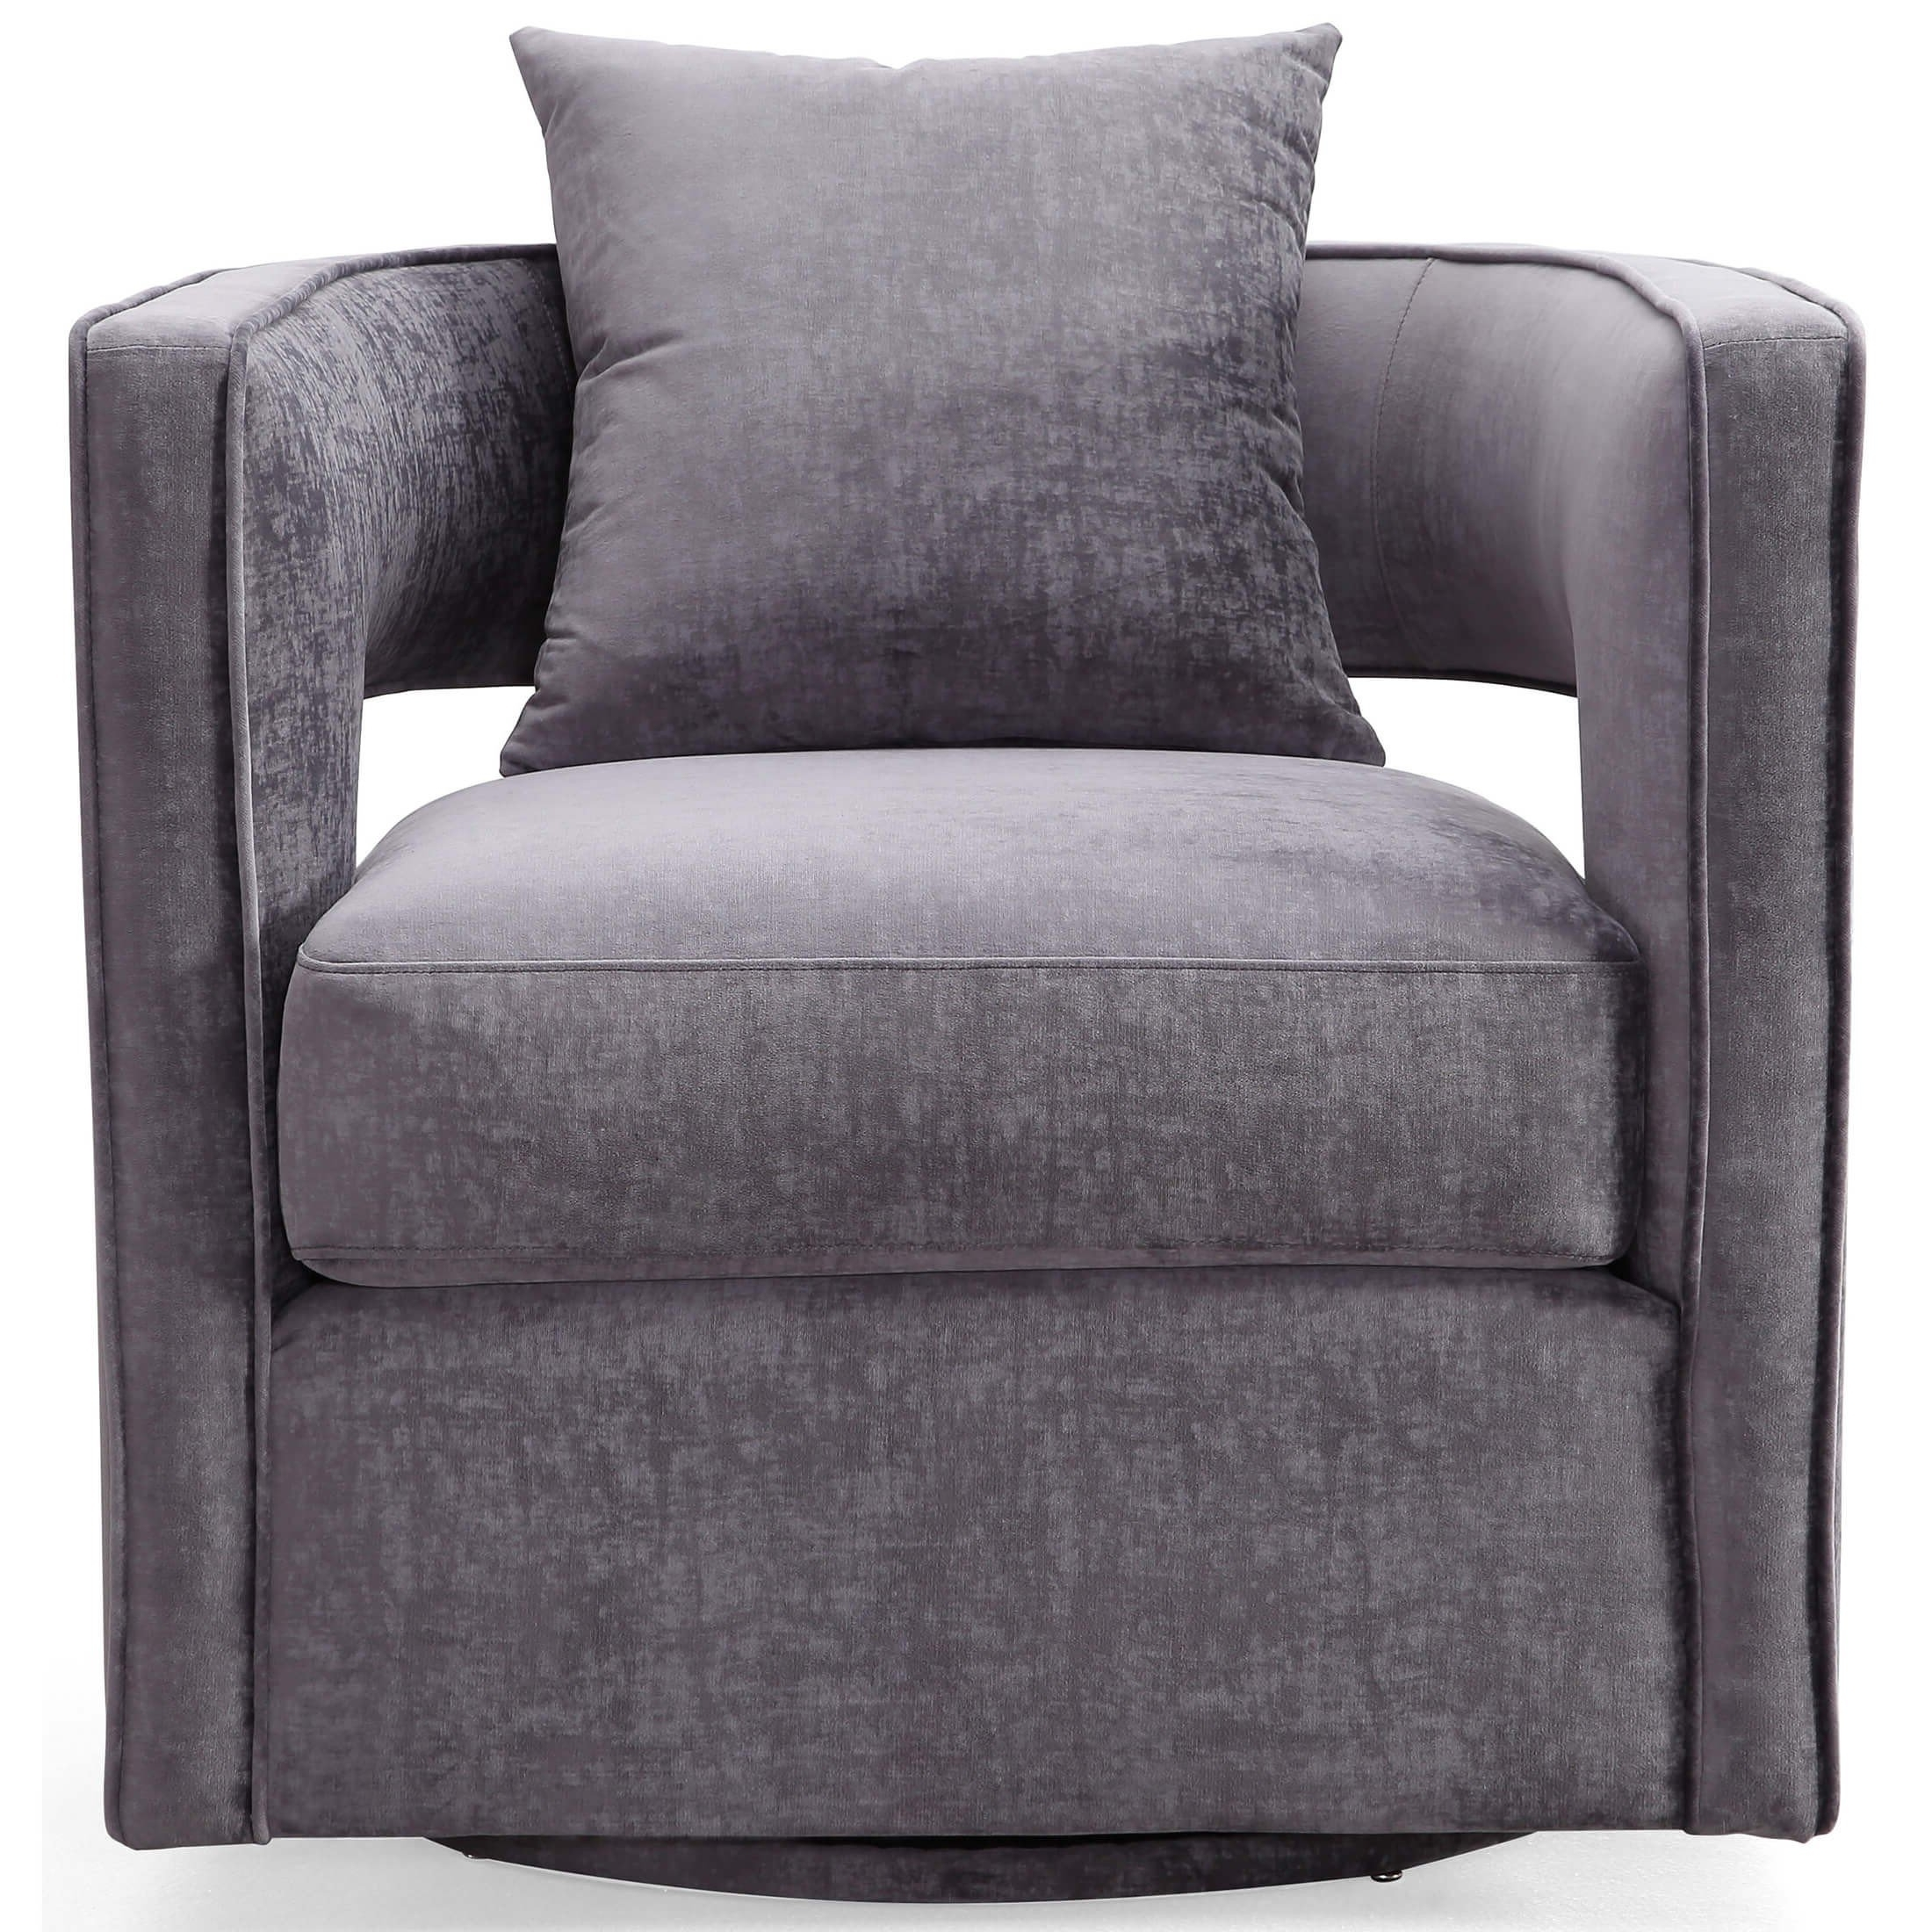 Fashionable Swivel Sofa Chairs In Contemporary Swivel Chairs Tags : Leather Swivel Club Chairs Mid (View 4 of 15)